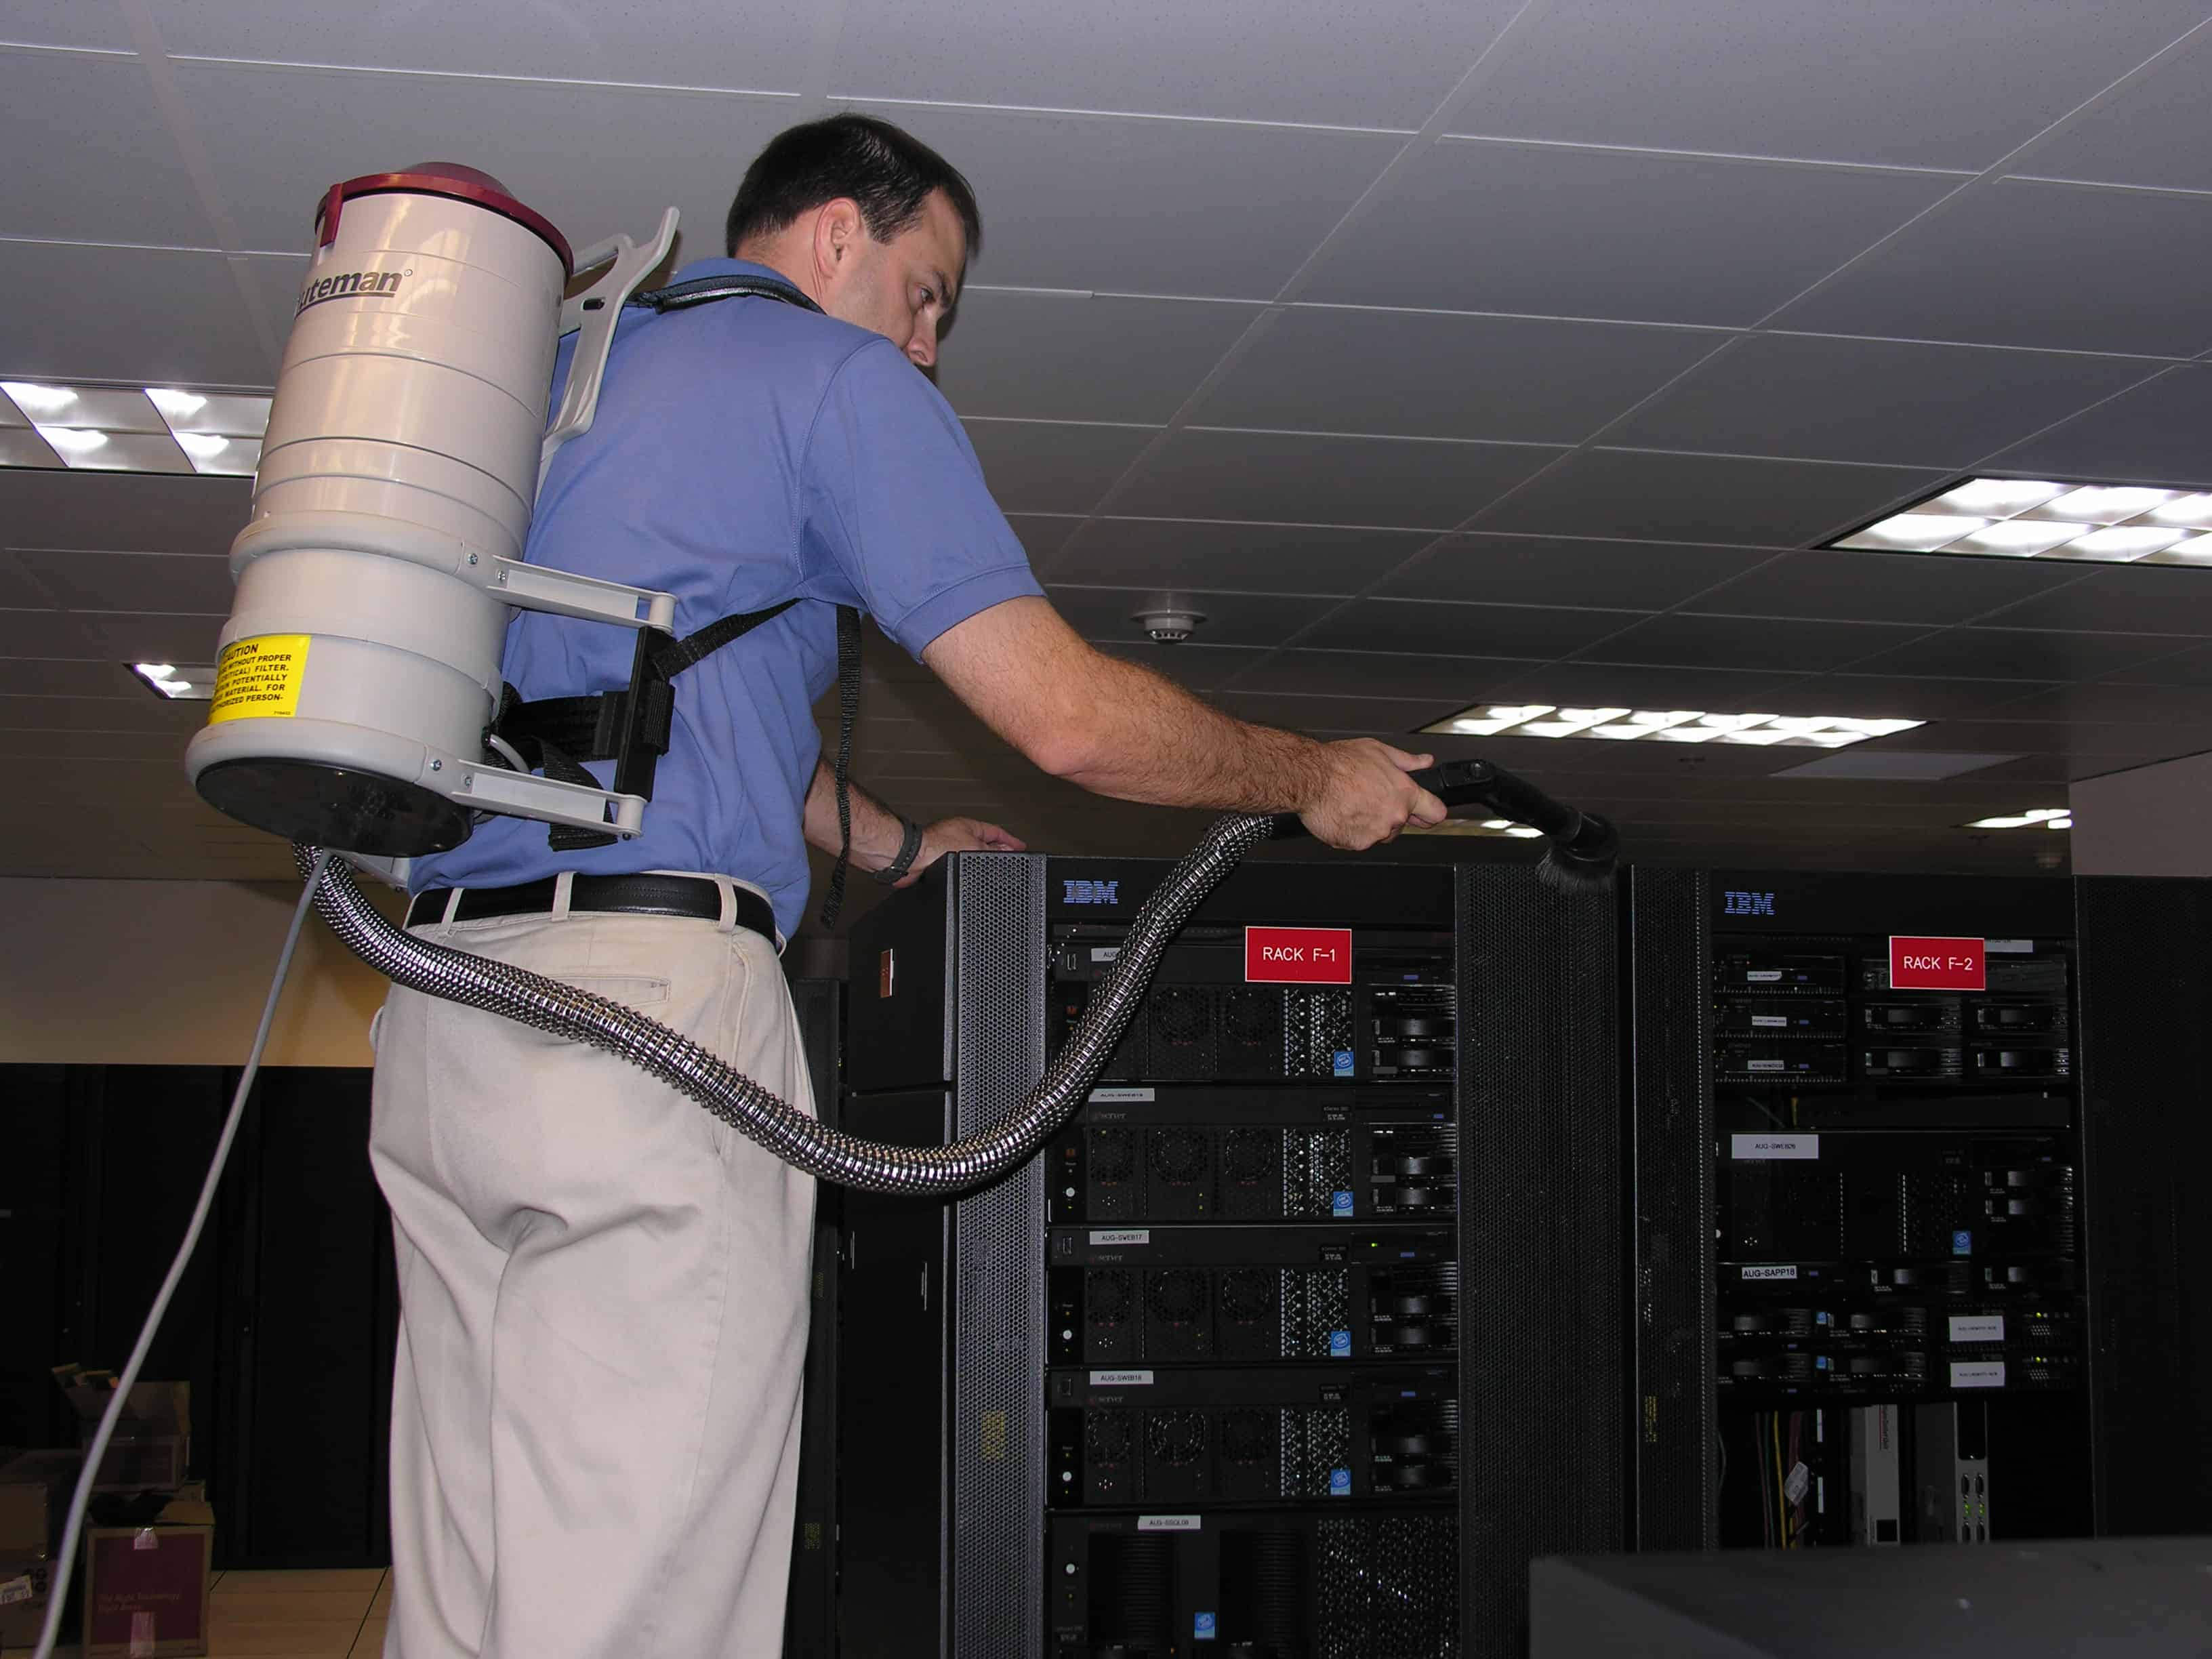 Data center cleaning - overhead